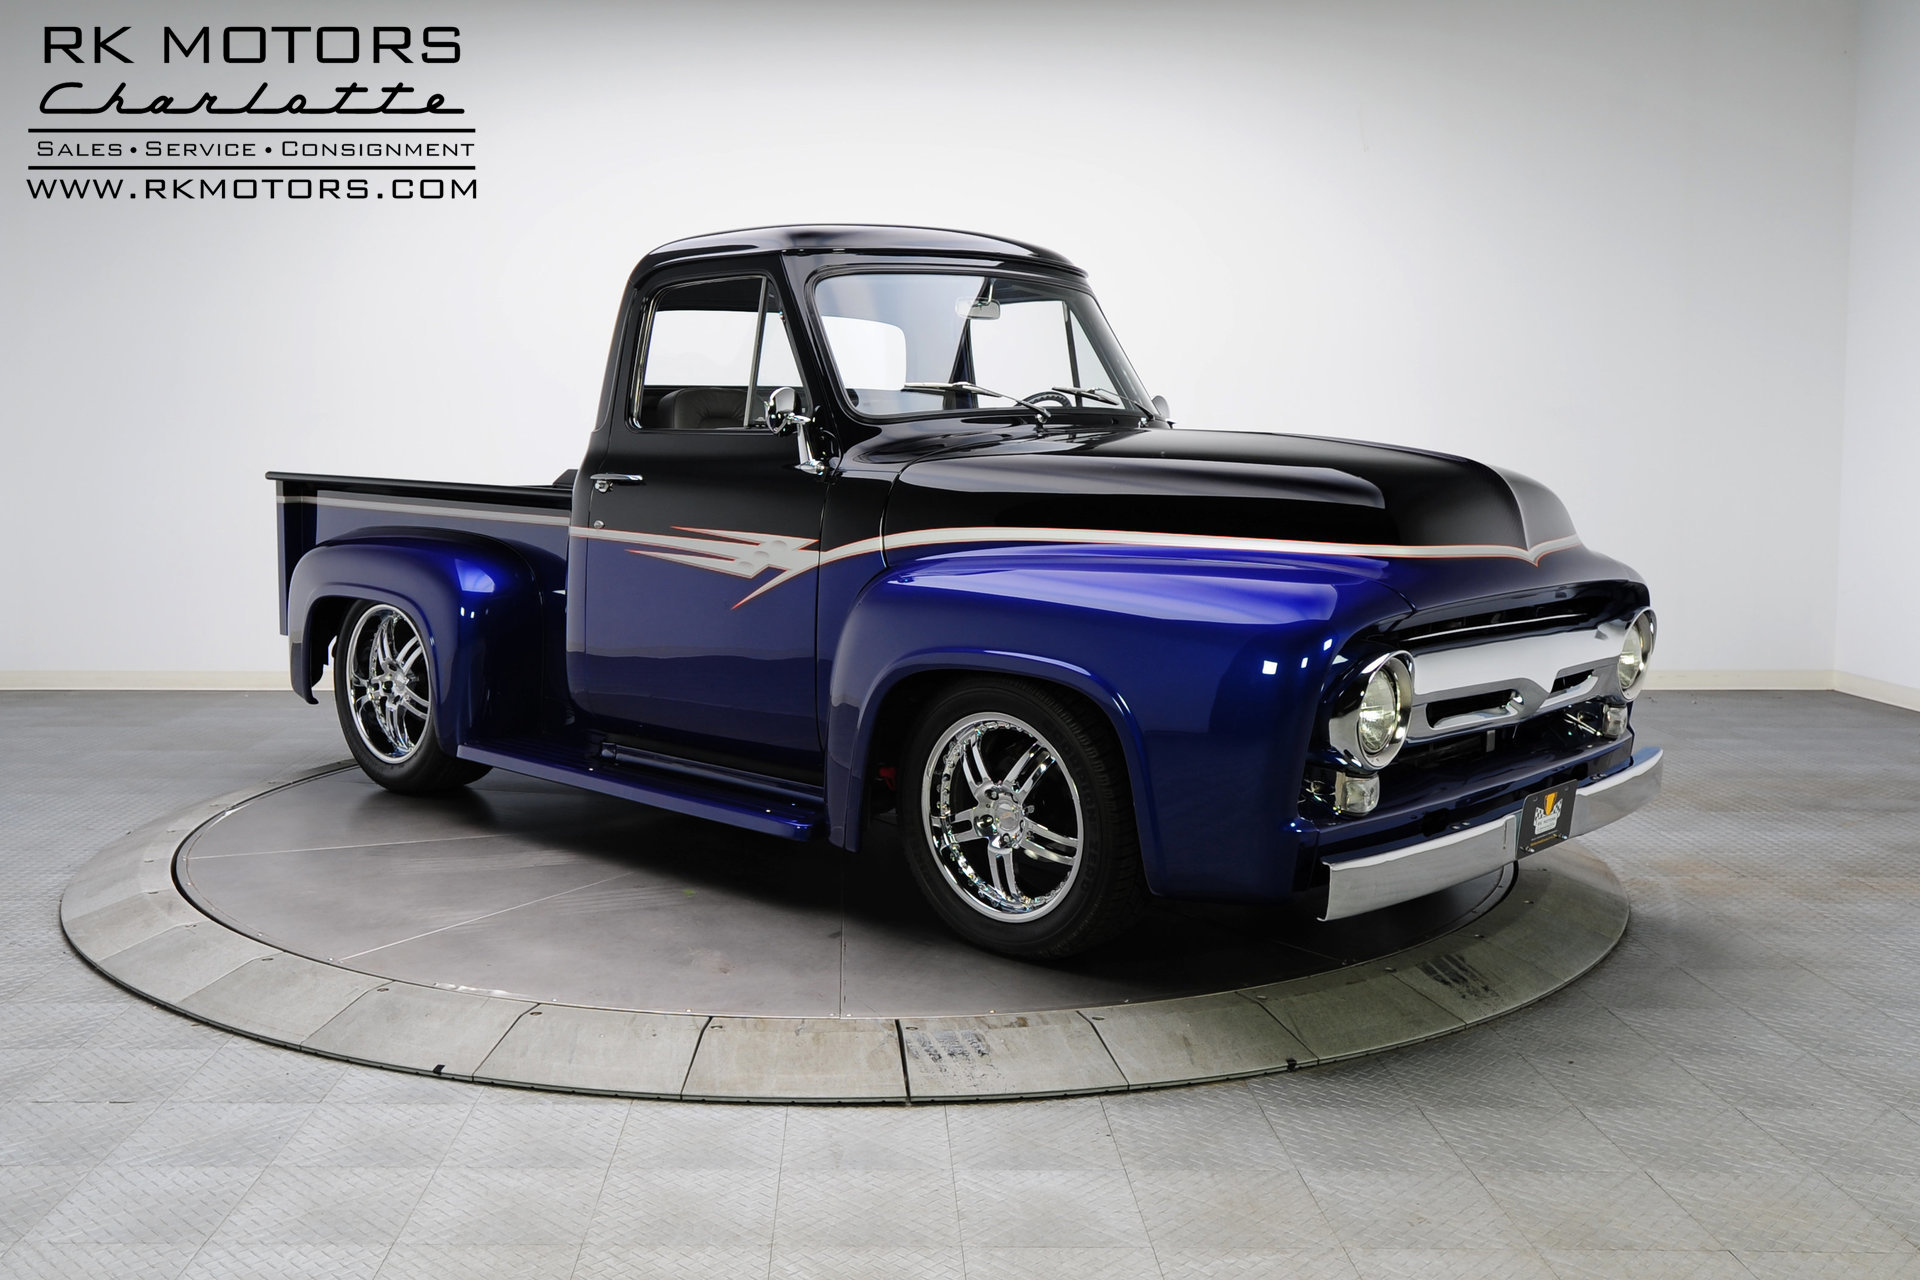 132949 1955 Ford F100 Rk Motors Classic Cars For Sale Parts